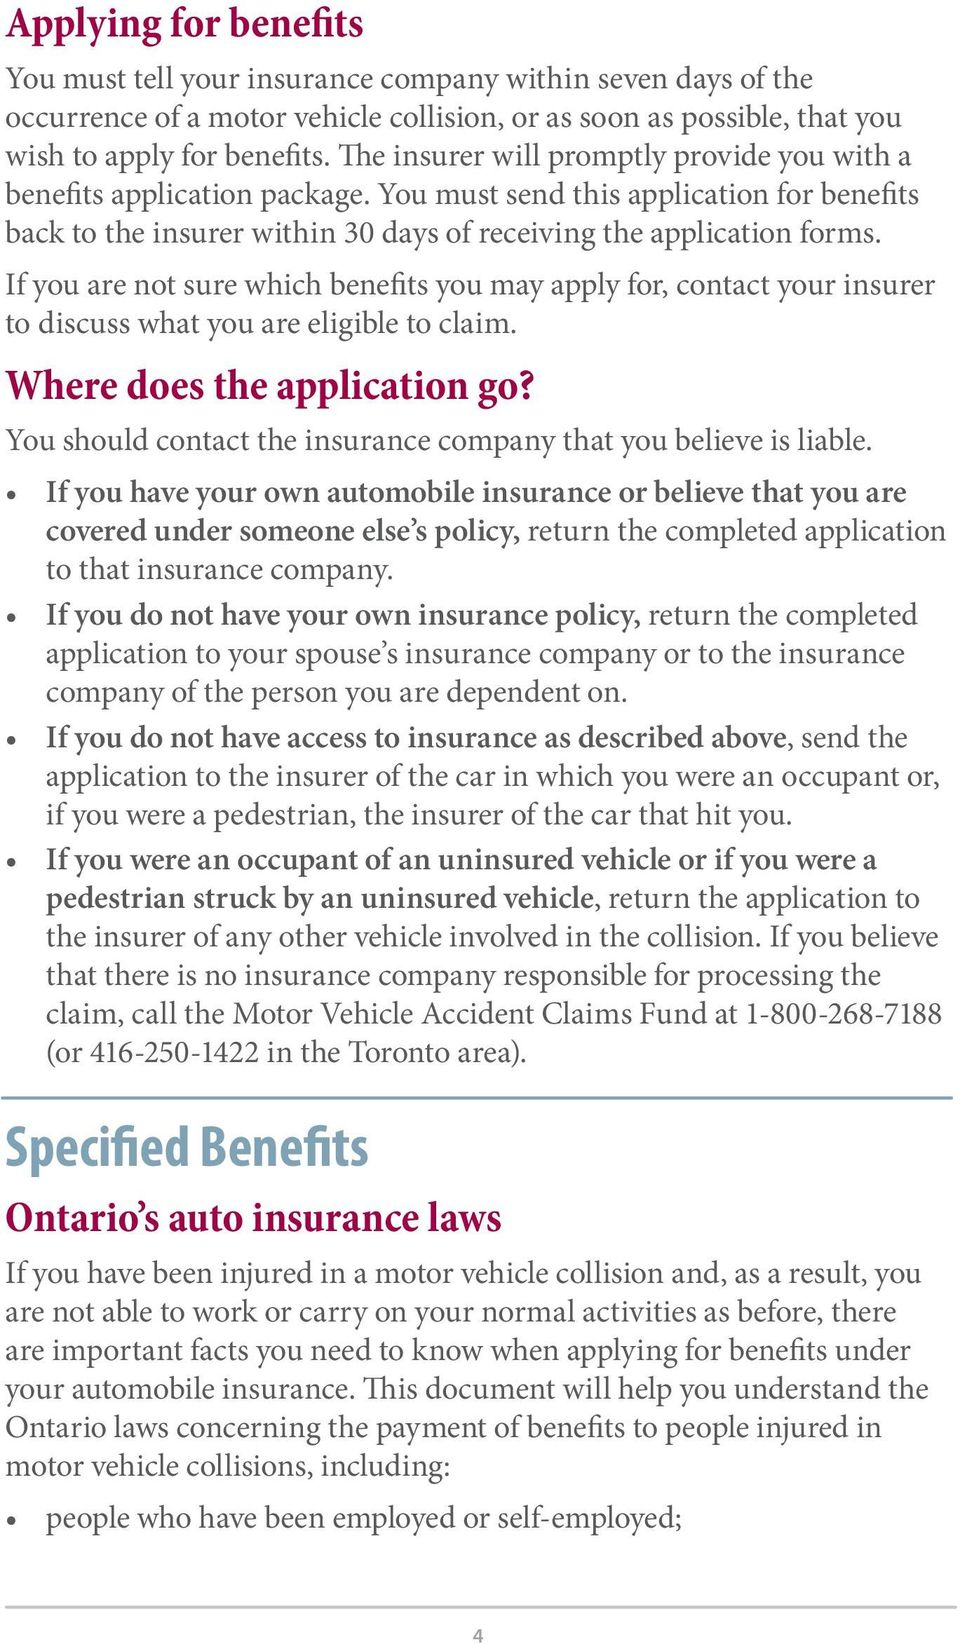 If you are not sure which benefits you may apply for, contact your insurer to discuss what you are eligible to claim. Where does the application go?